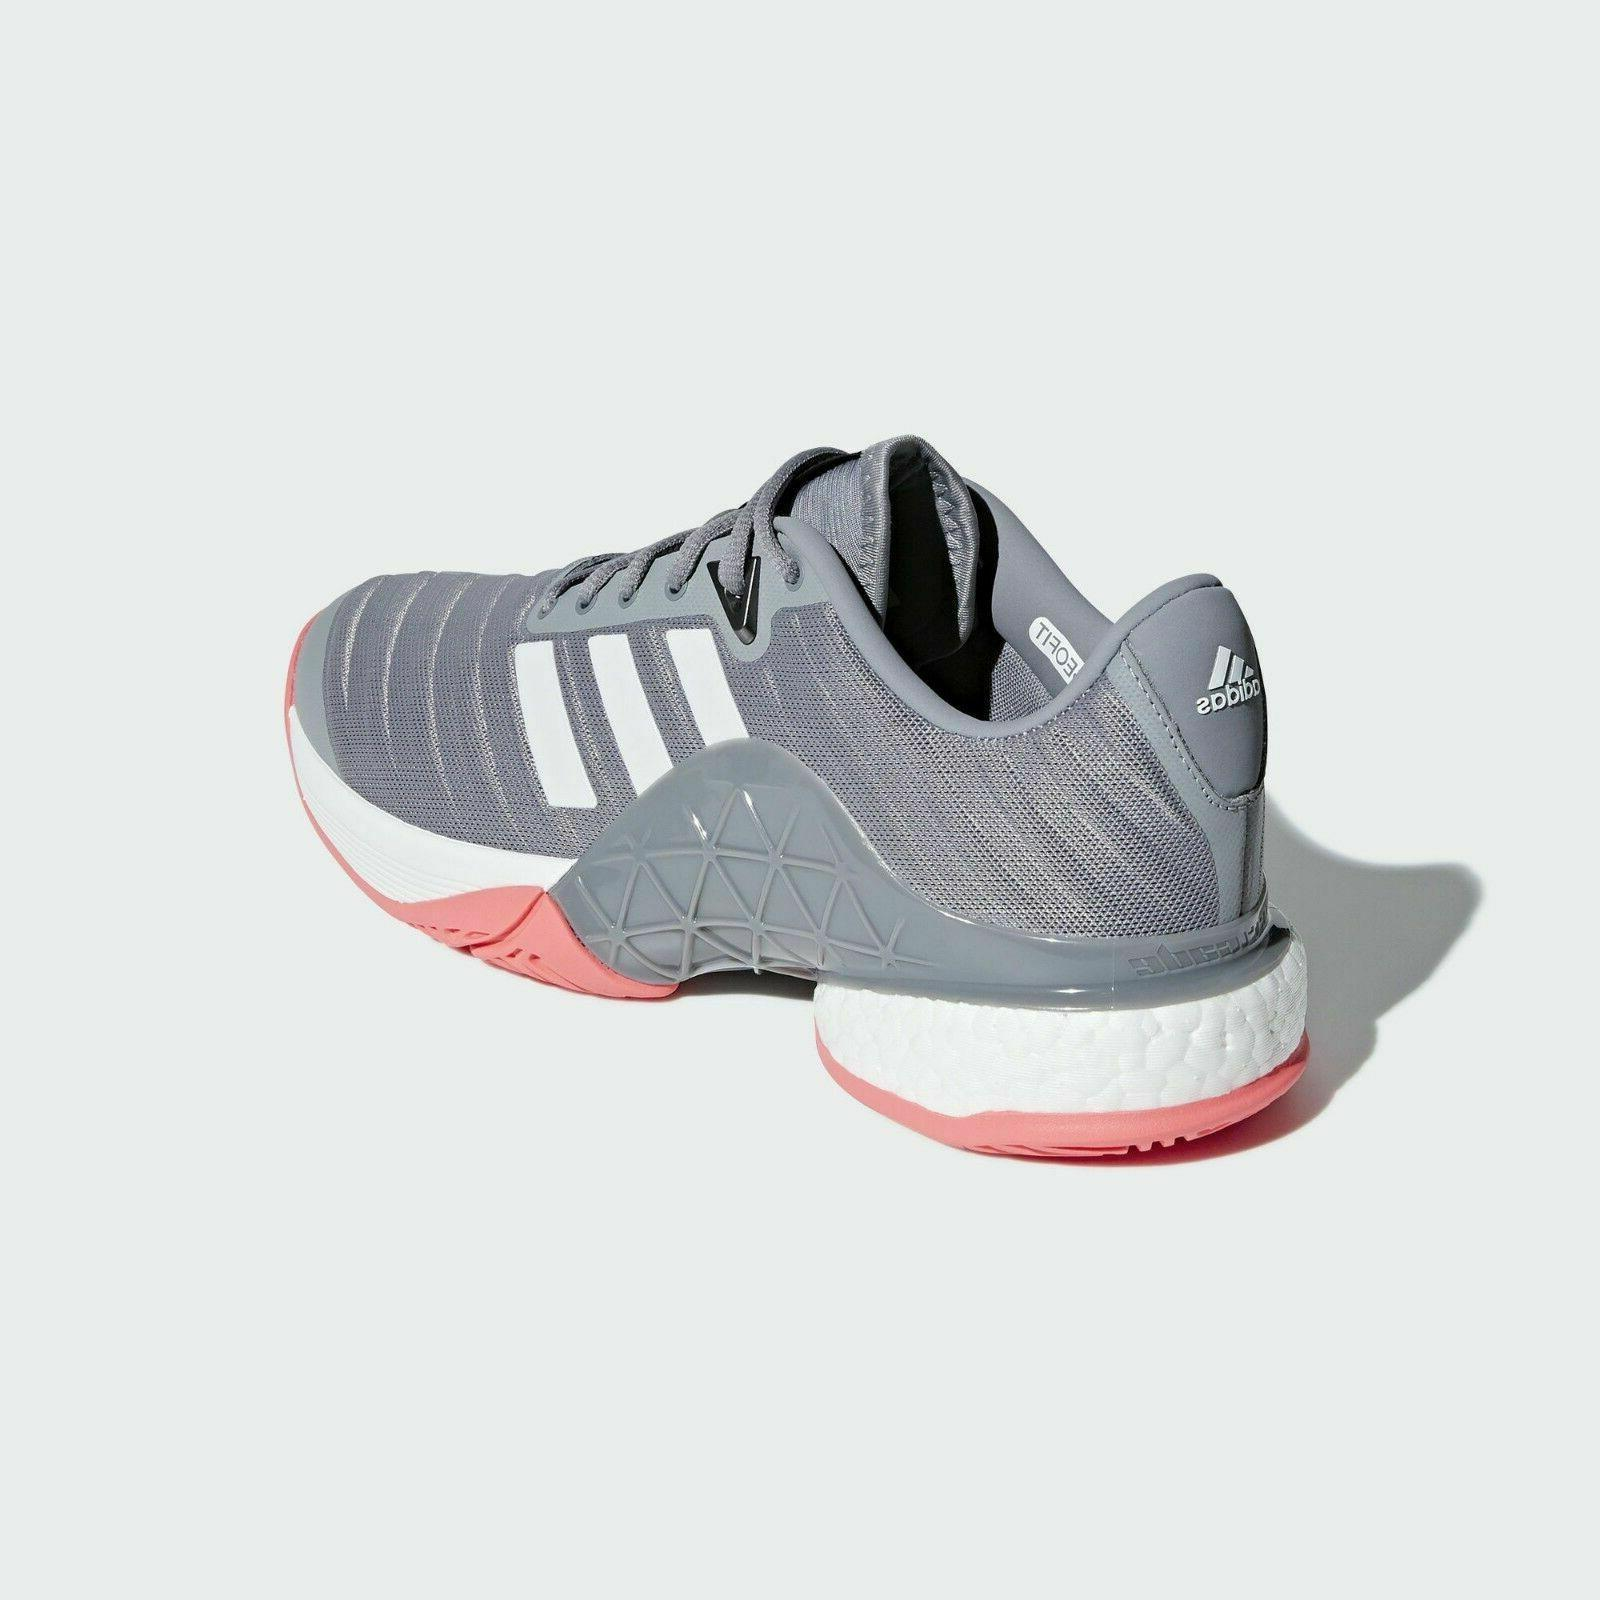 NEW Adidas Barricade Boost AH2094 Shoes Size